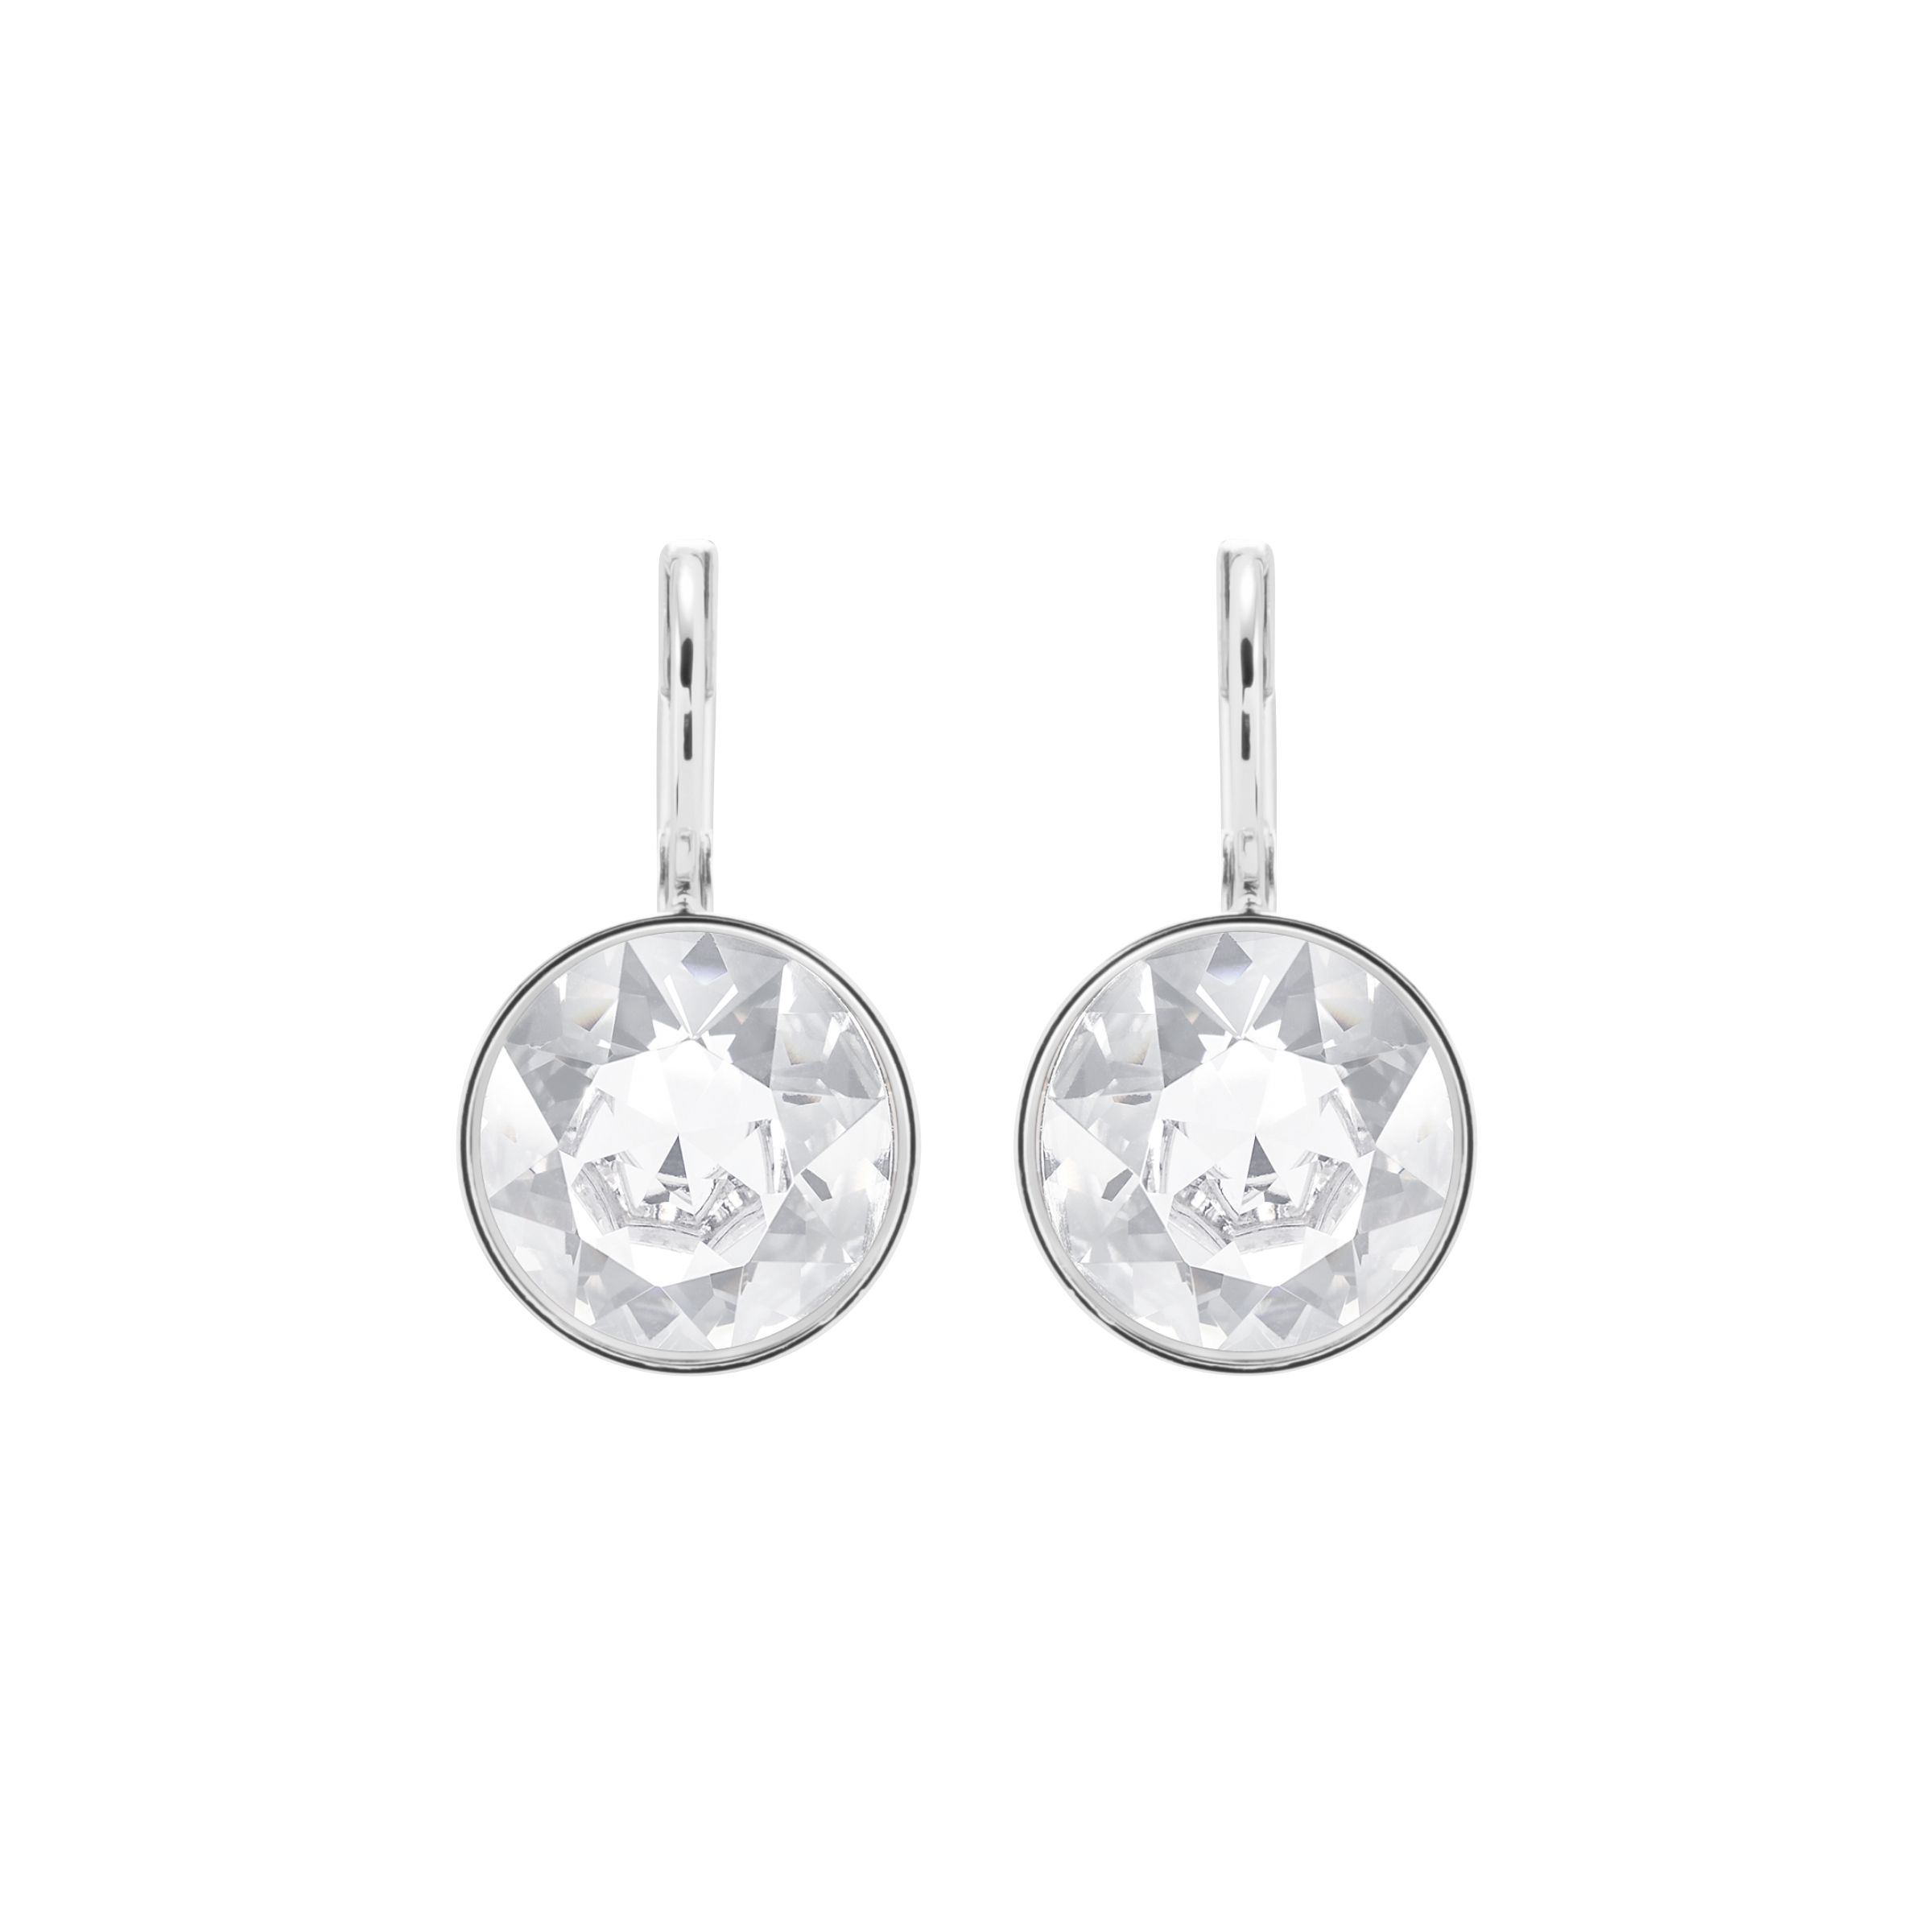 Bella Mini Pierced Earrings, White, Rhodium Plated